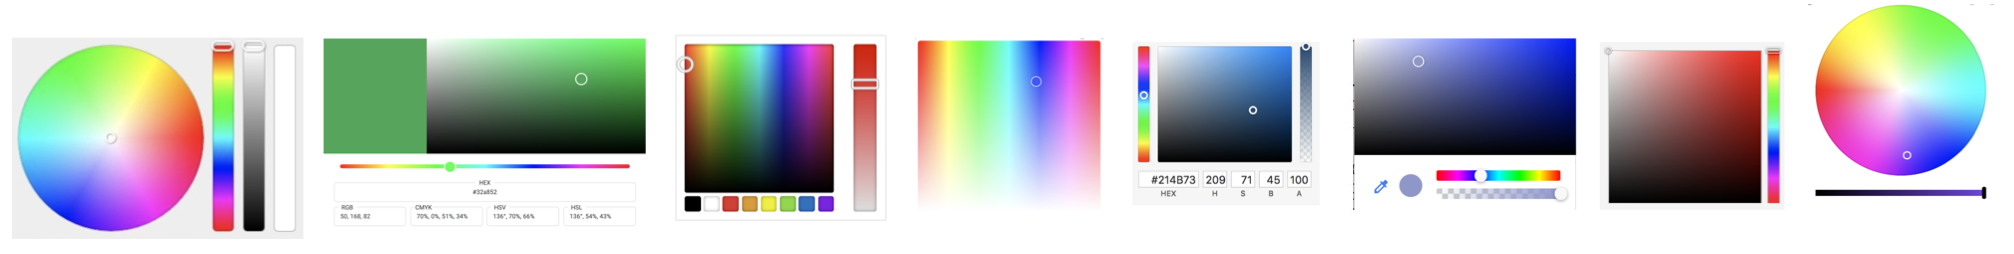 Lots of different color pickers, showing different layouts and structures of colorspace